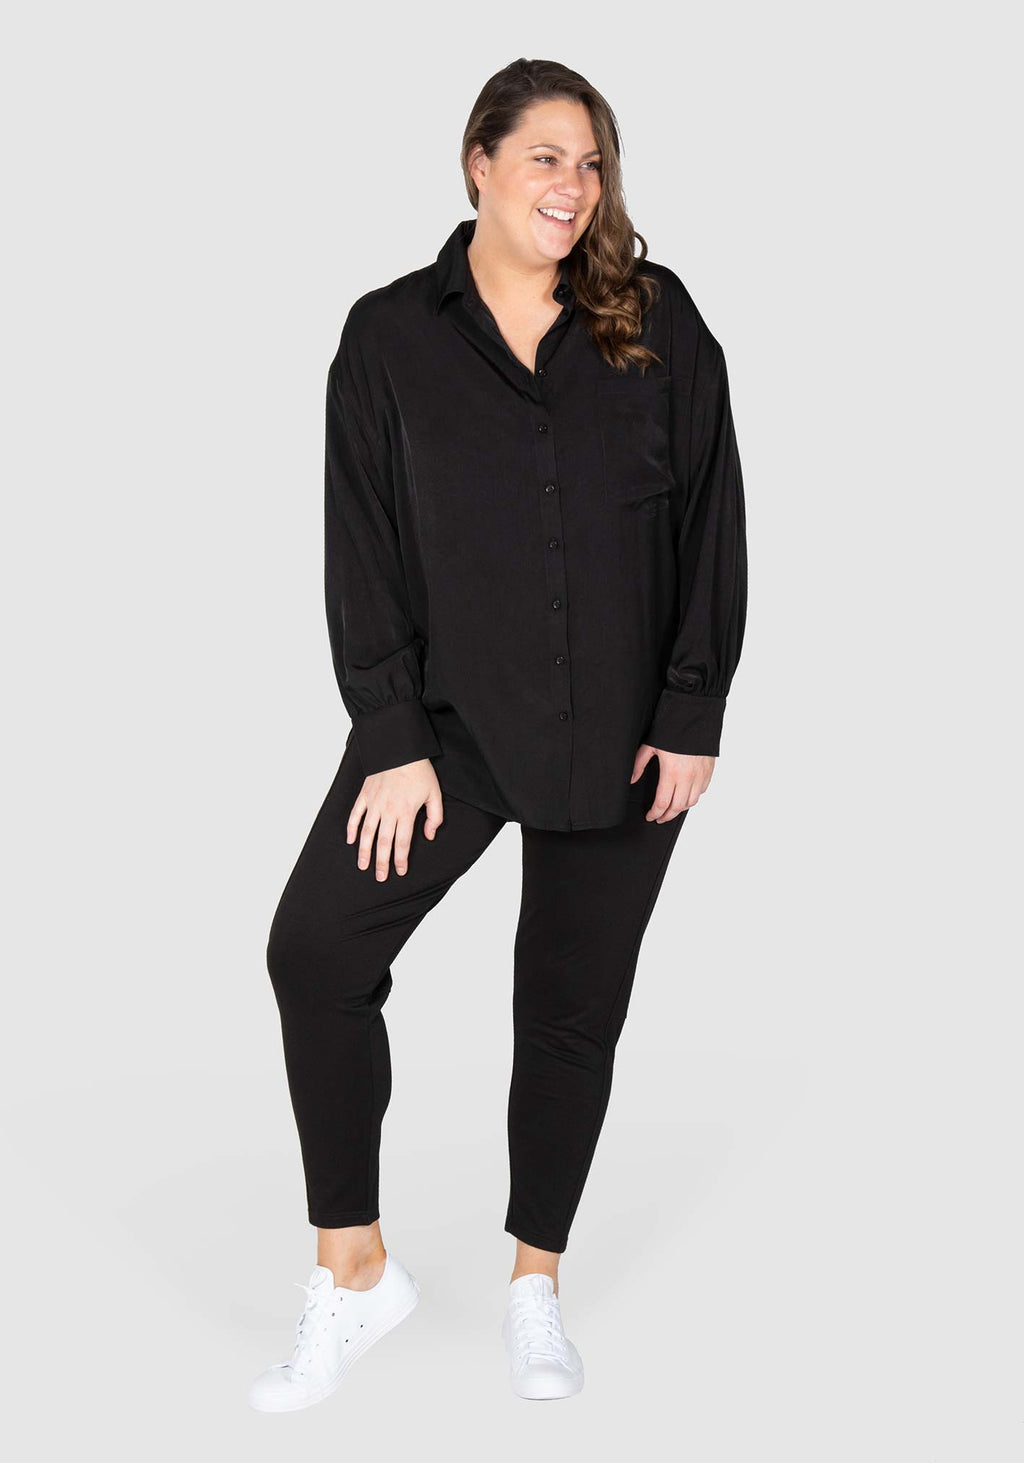 Phoebe Peached Over-shirt  - Black